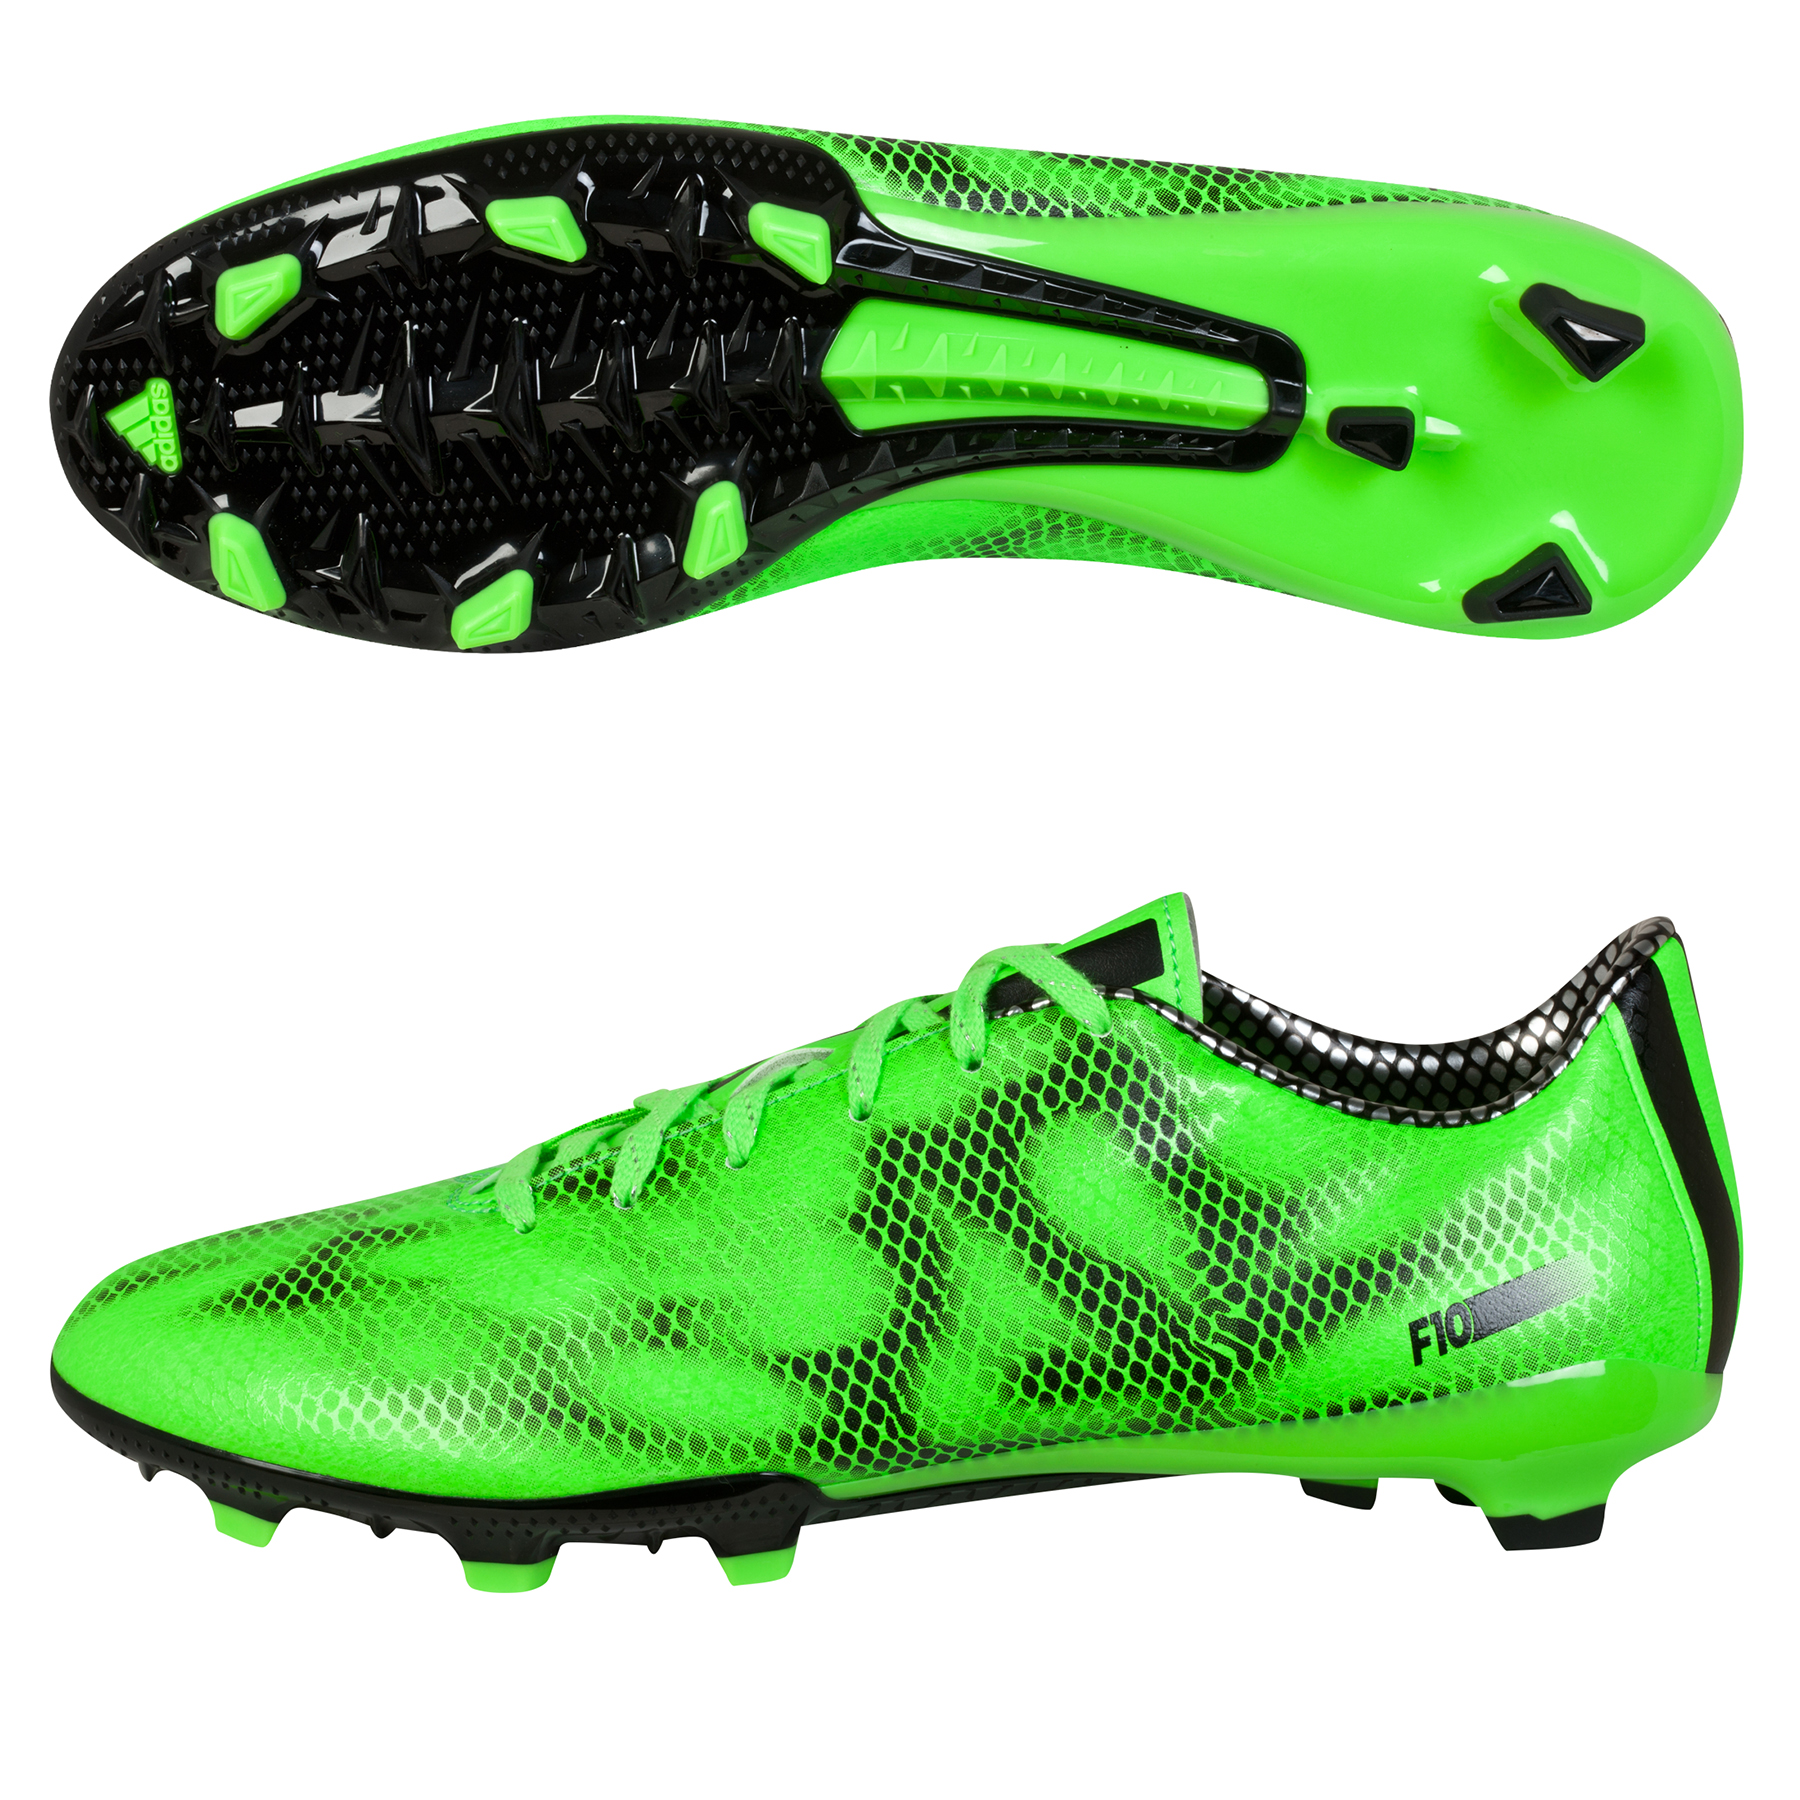 Adidas F10 Firm Ground Football Boots Green